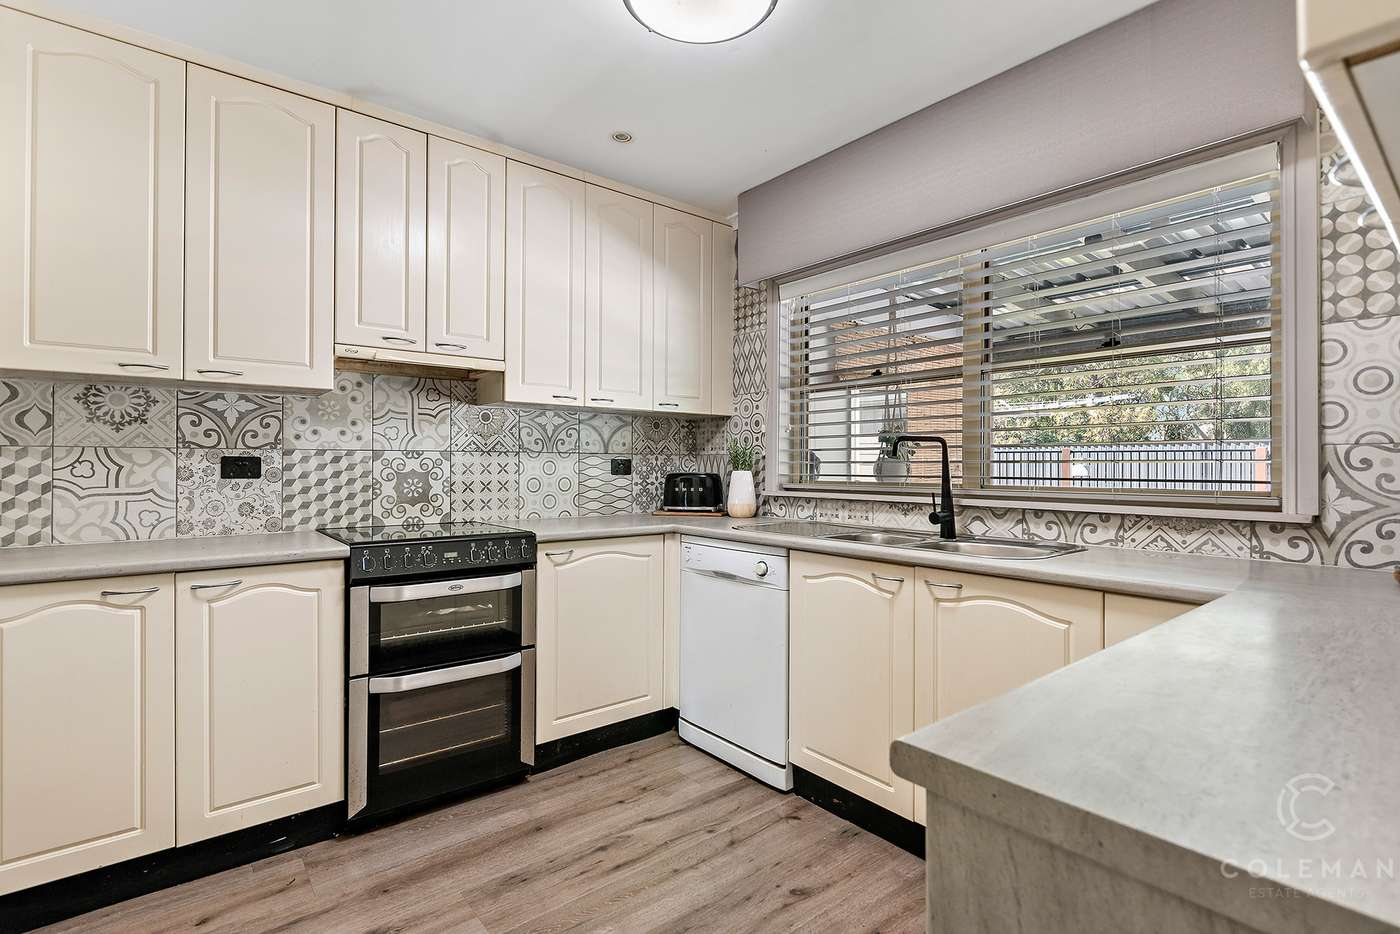 Sixth view of Homely house listing, 3 Michele Avenue, Noraville NSW 2263